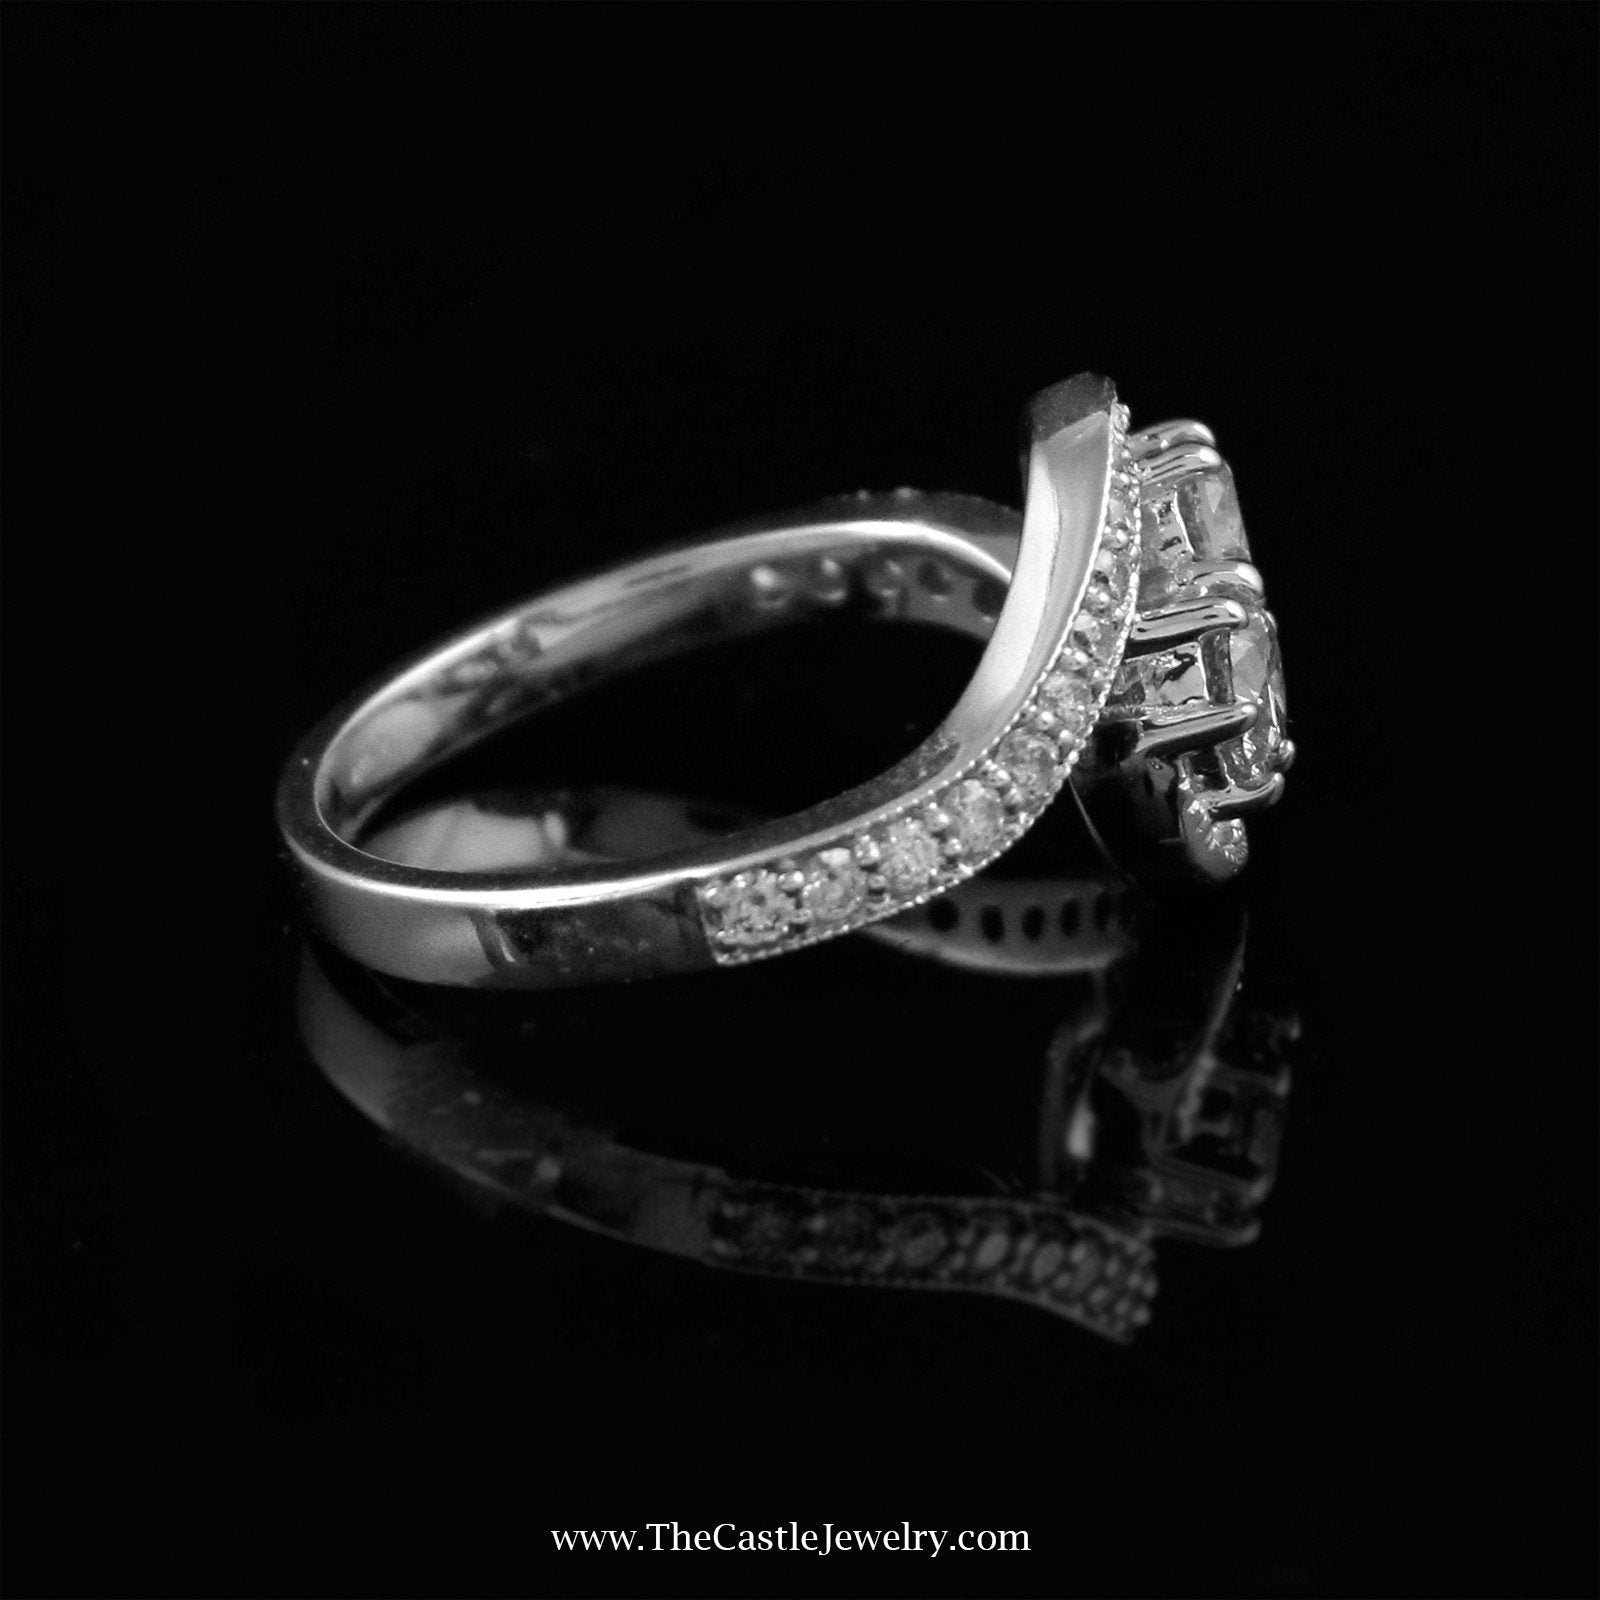 My Love My Best Friend 2 Round 1cttw Diamond Ring in 14K White Gold-2